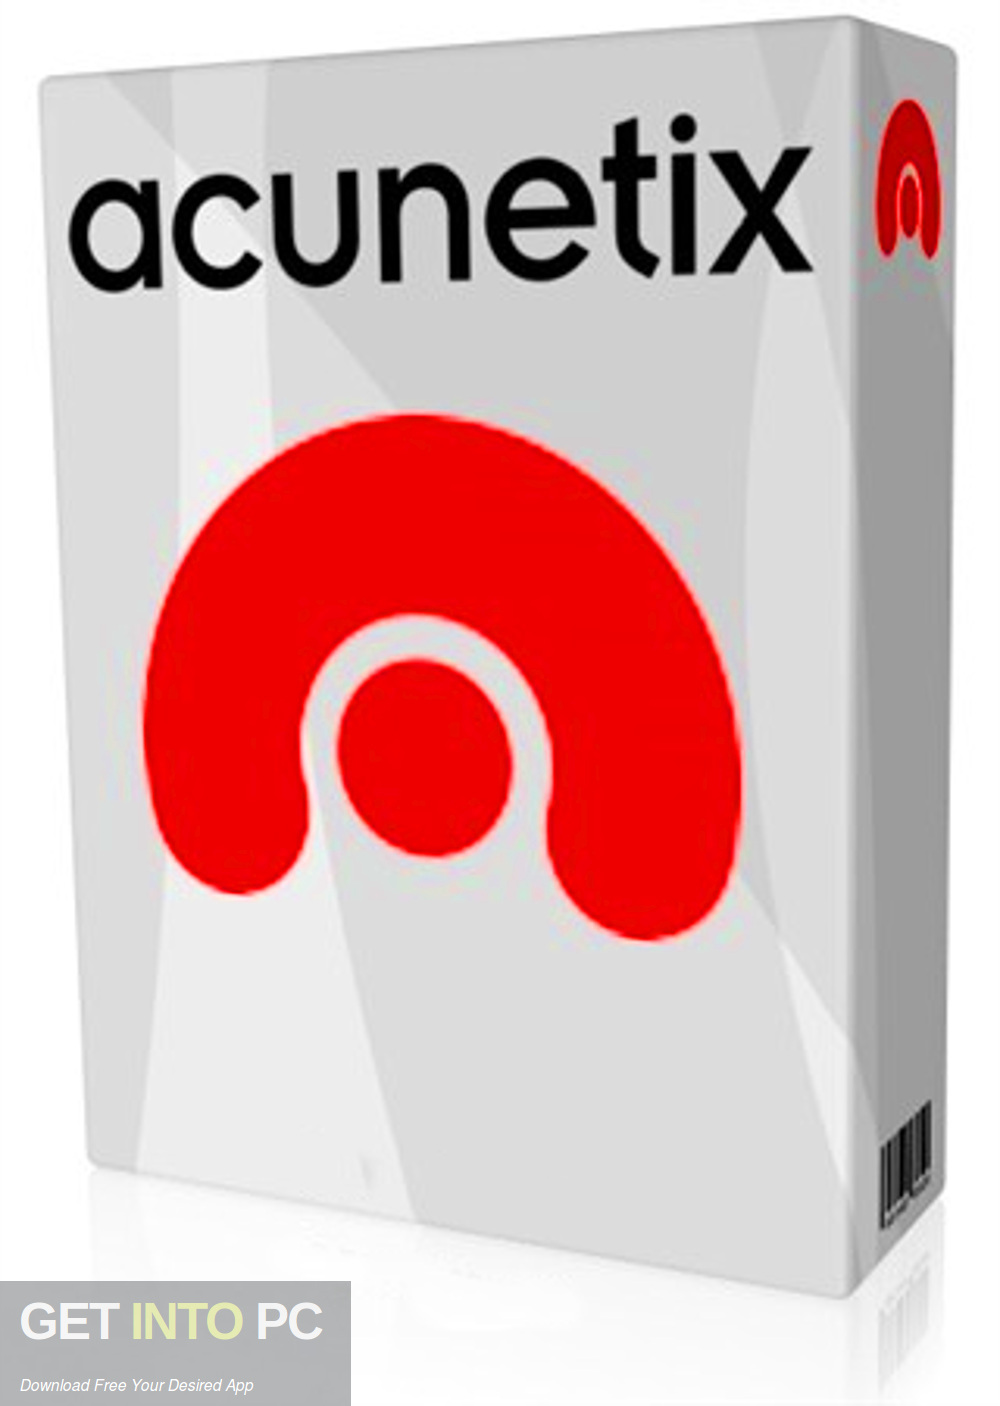 Acunetix Web Vulnerability Scanner 2019 Free Download-GetintoPC.com